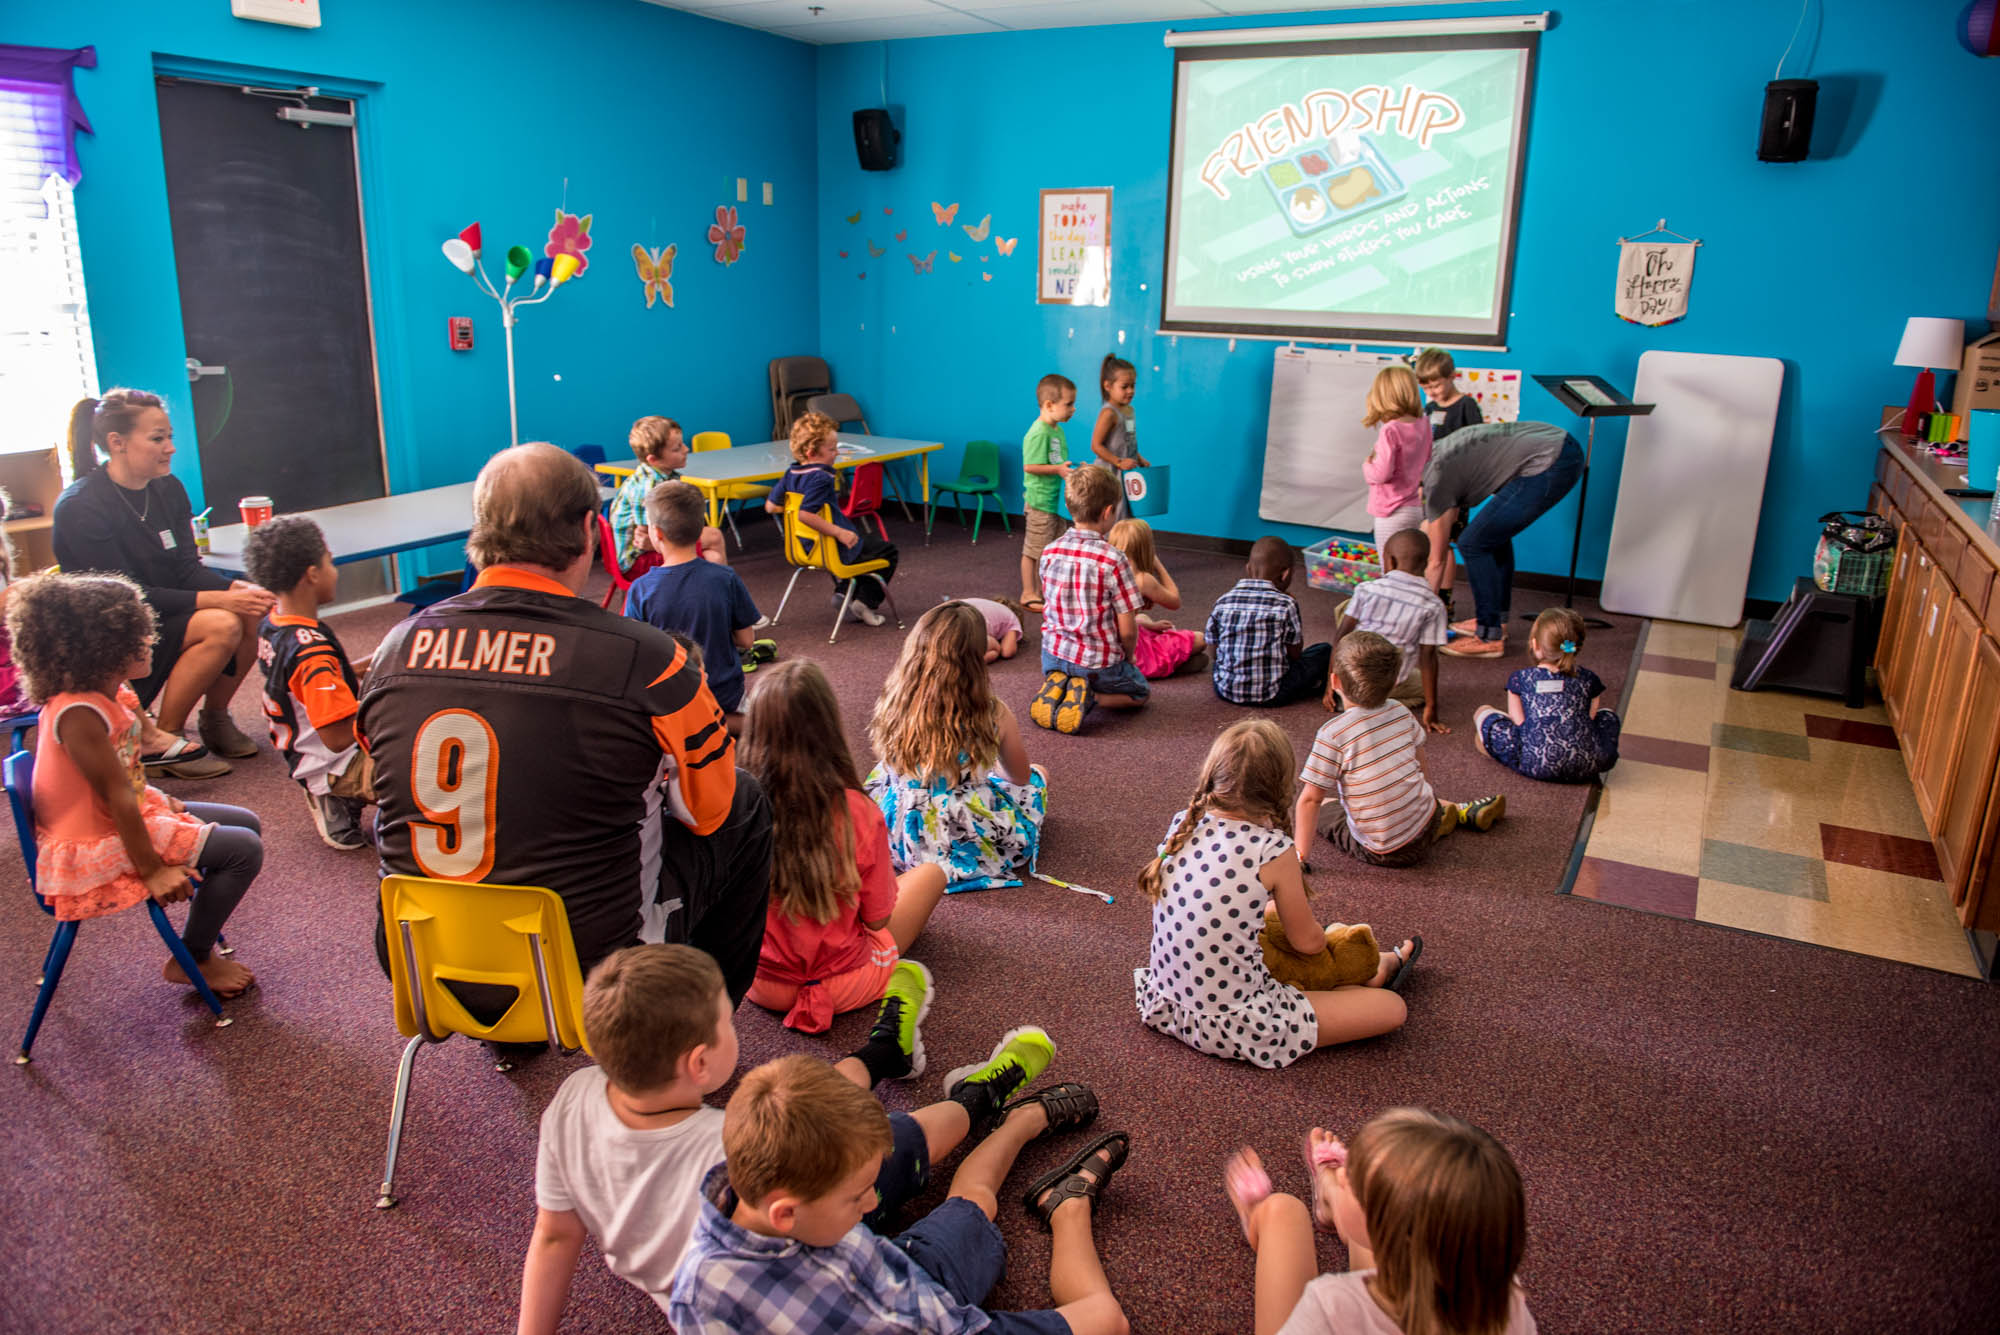 Elementary (grades K-5) - K-5 classrooms value high energy, fun, and engaging teaching and worship, as well as intentional small groups. The environment promotes building strong relationships with one other and leaders while learning about God.